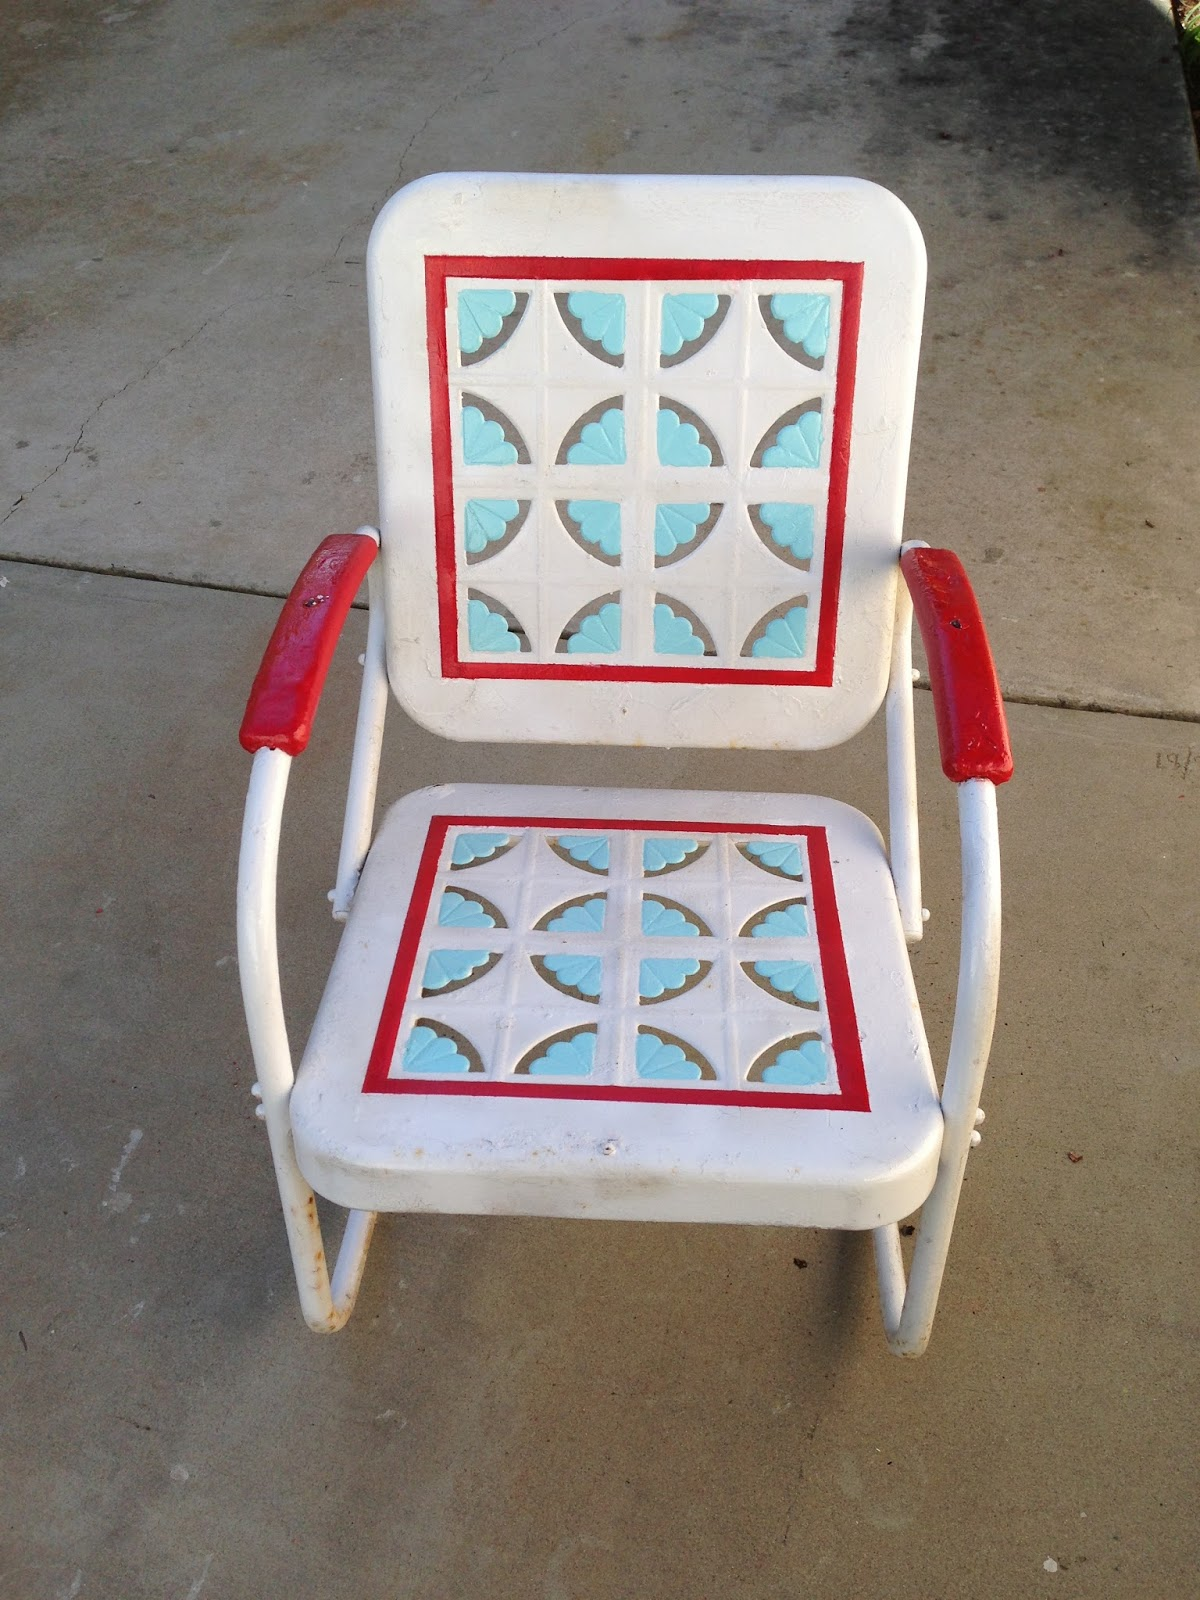 Cherry Picked Vintage Motel Chair Transformation Score